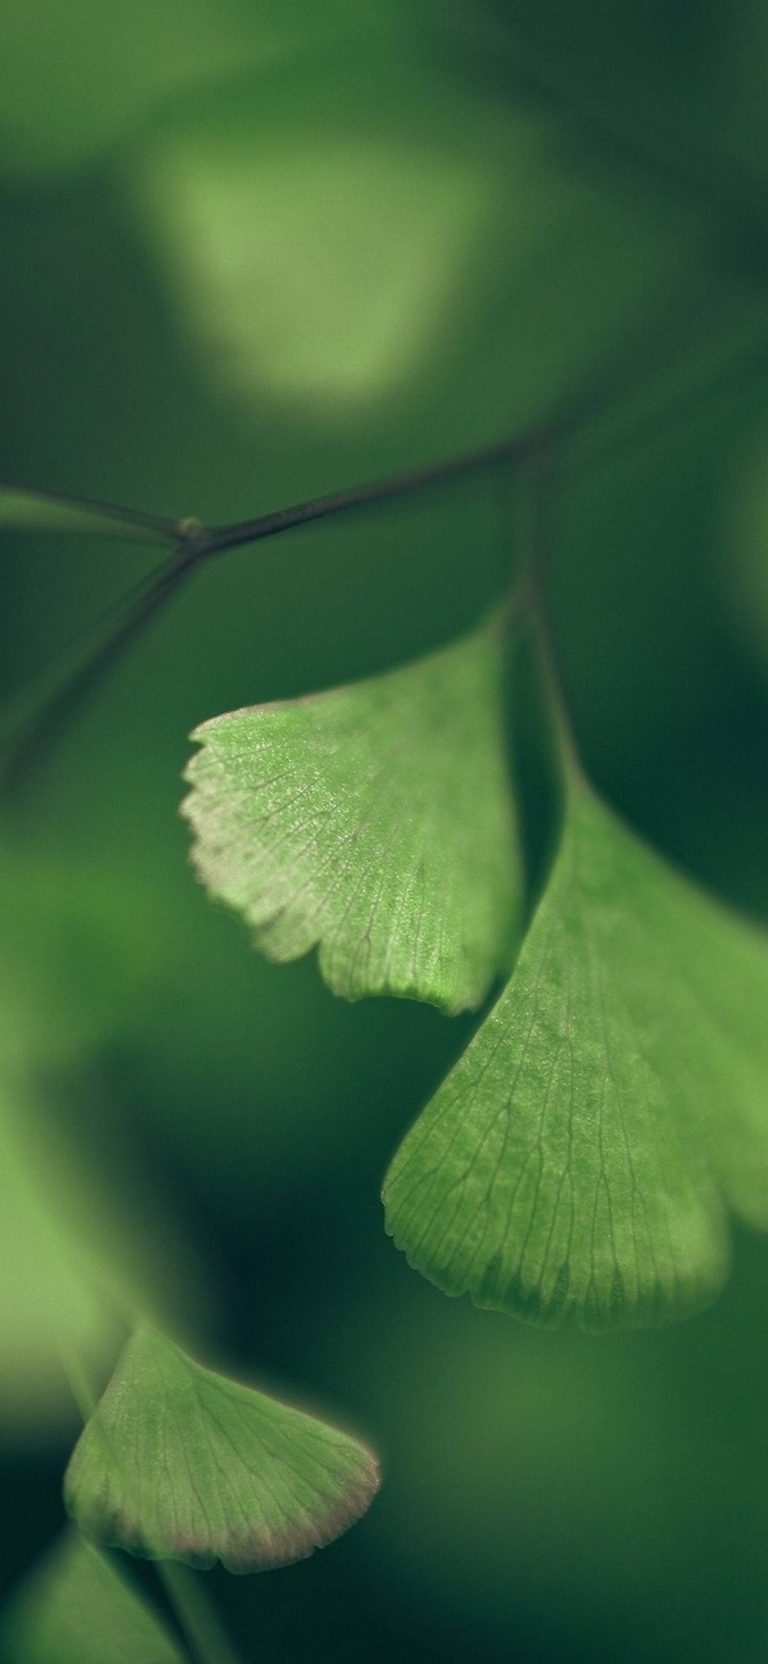 Green Nature Macro Ginkgo Foliage 1080x2340 768x1664